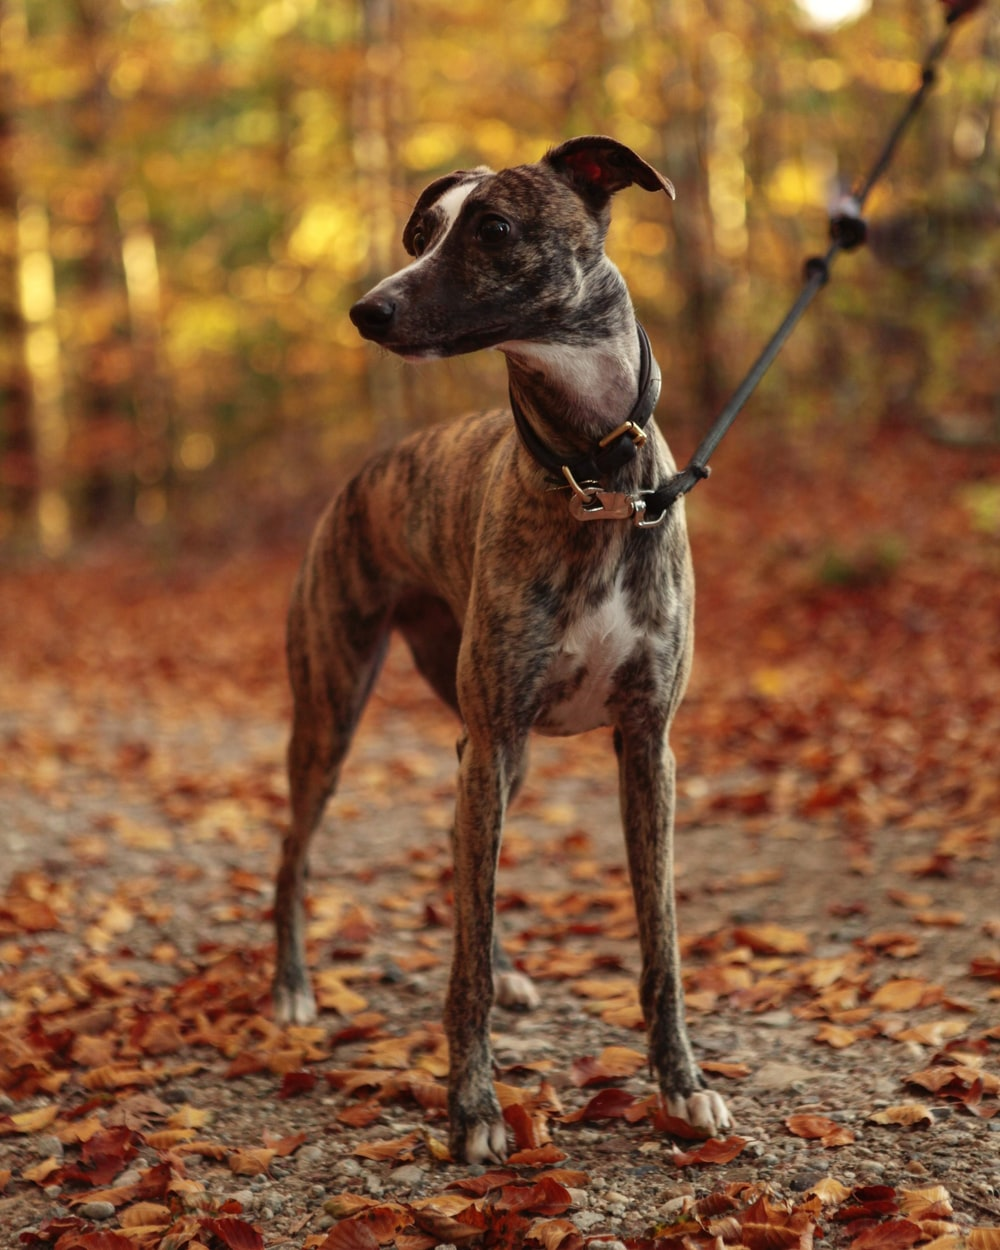 brindle hound standing on dried leaves